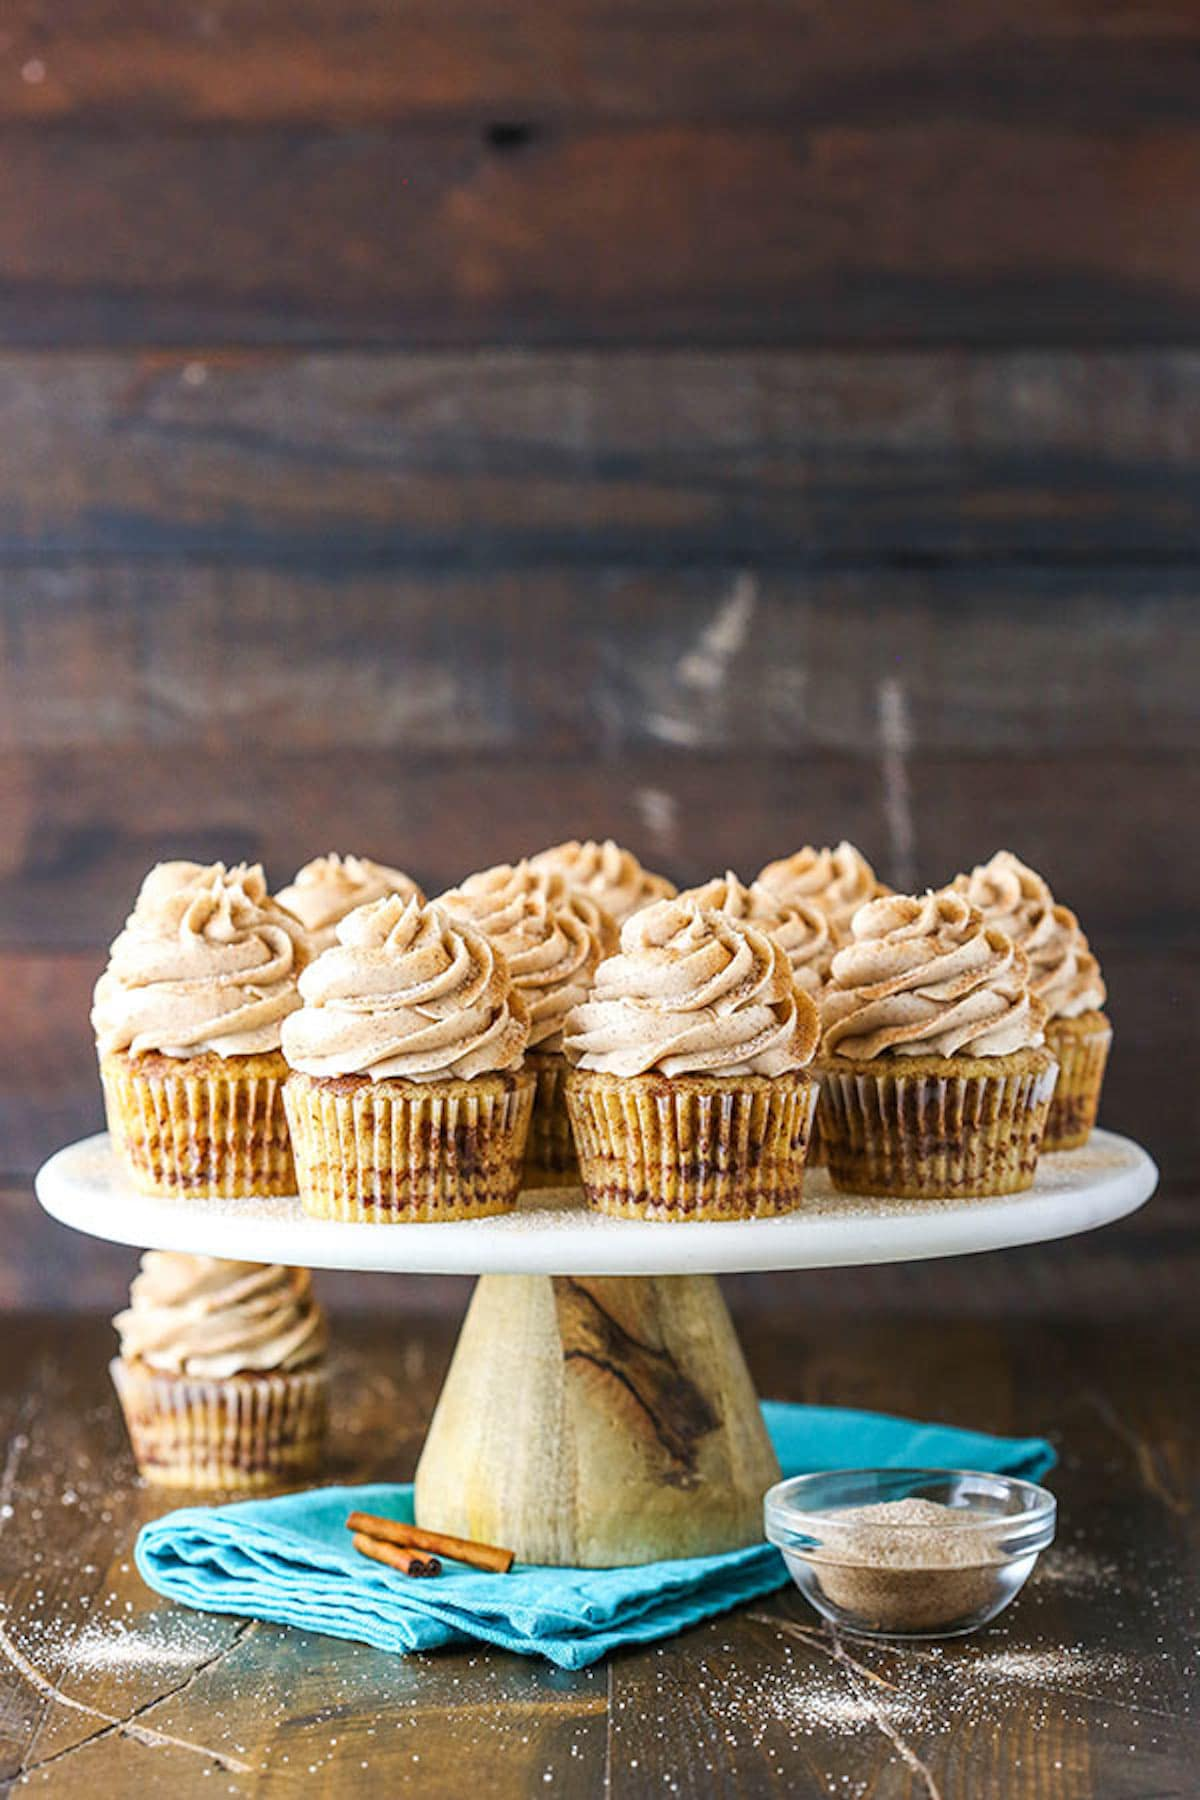 A Cake Stand Holding a Batch of Cinnamon Cupcakes in Front of a Wooden Wall